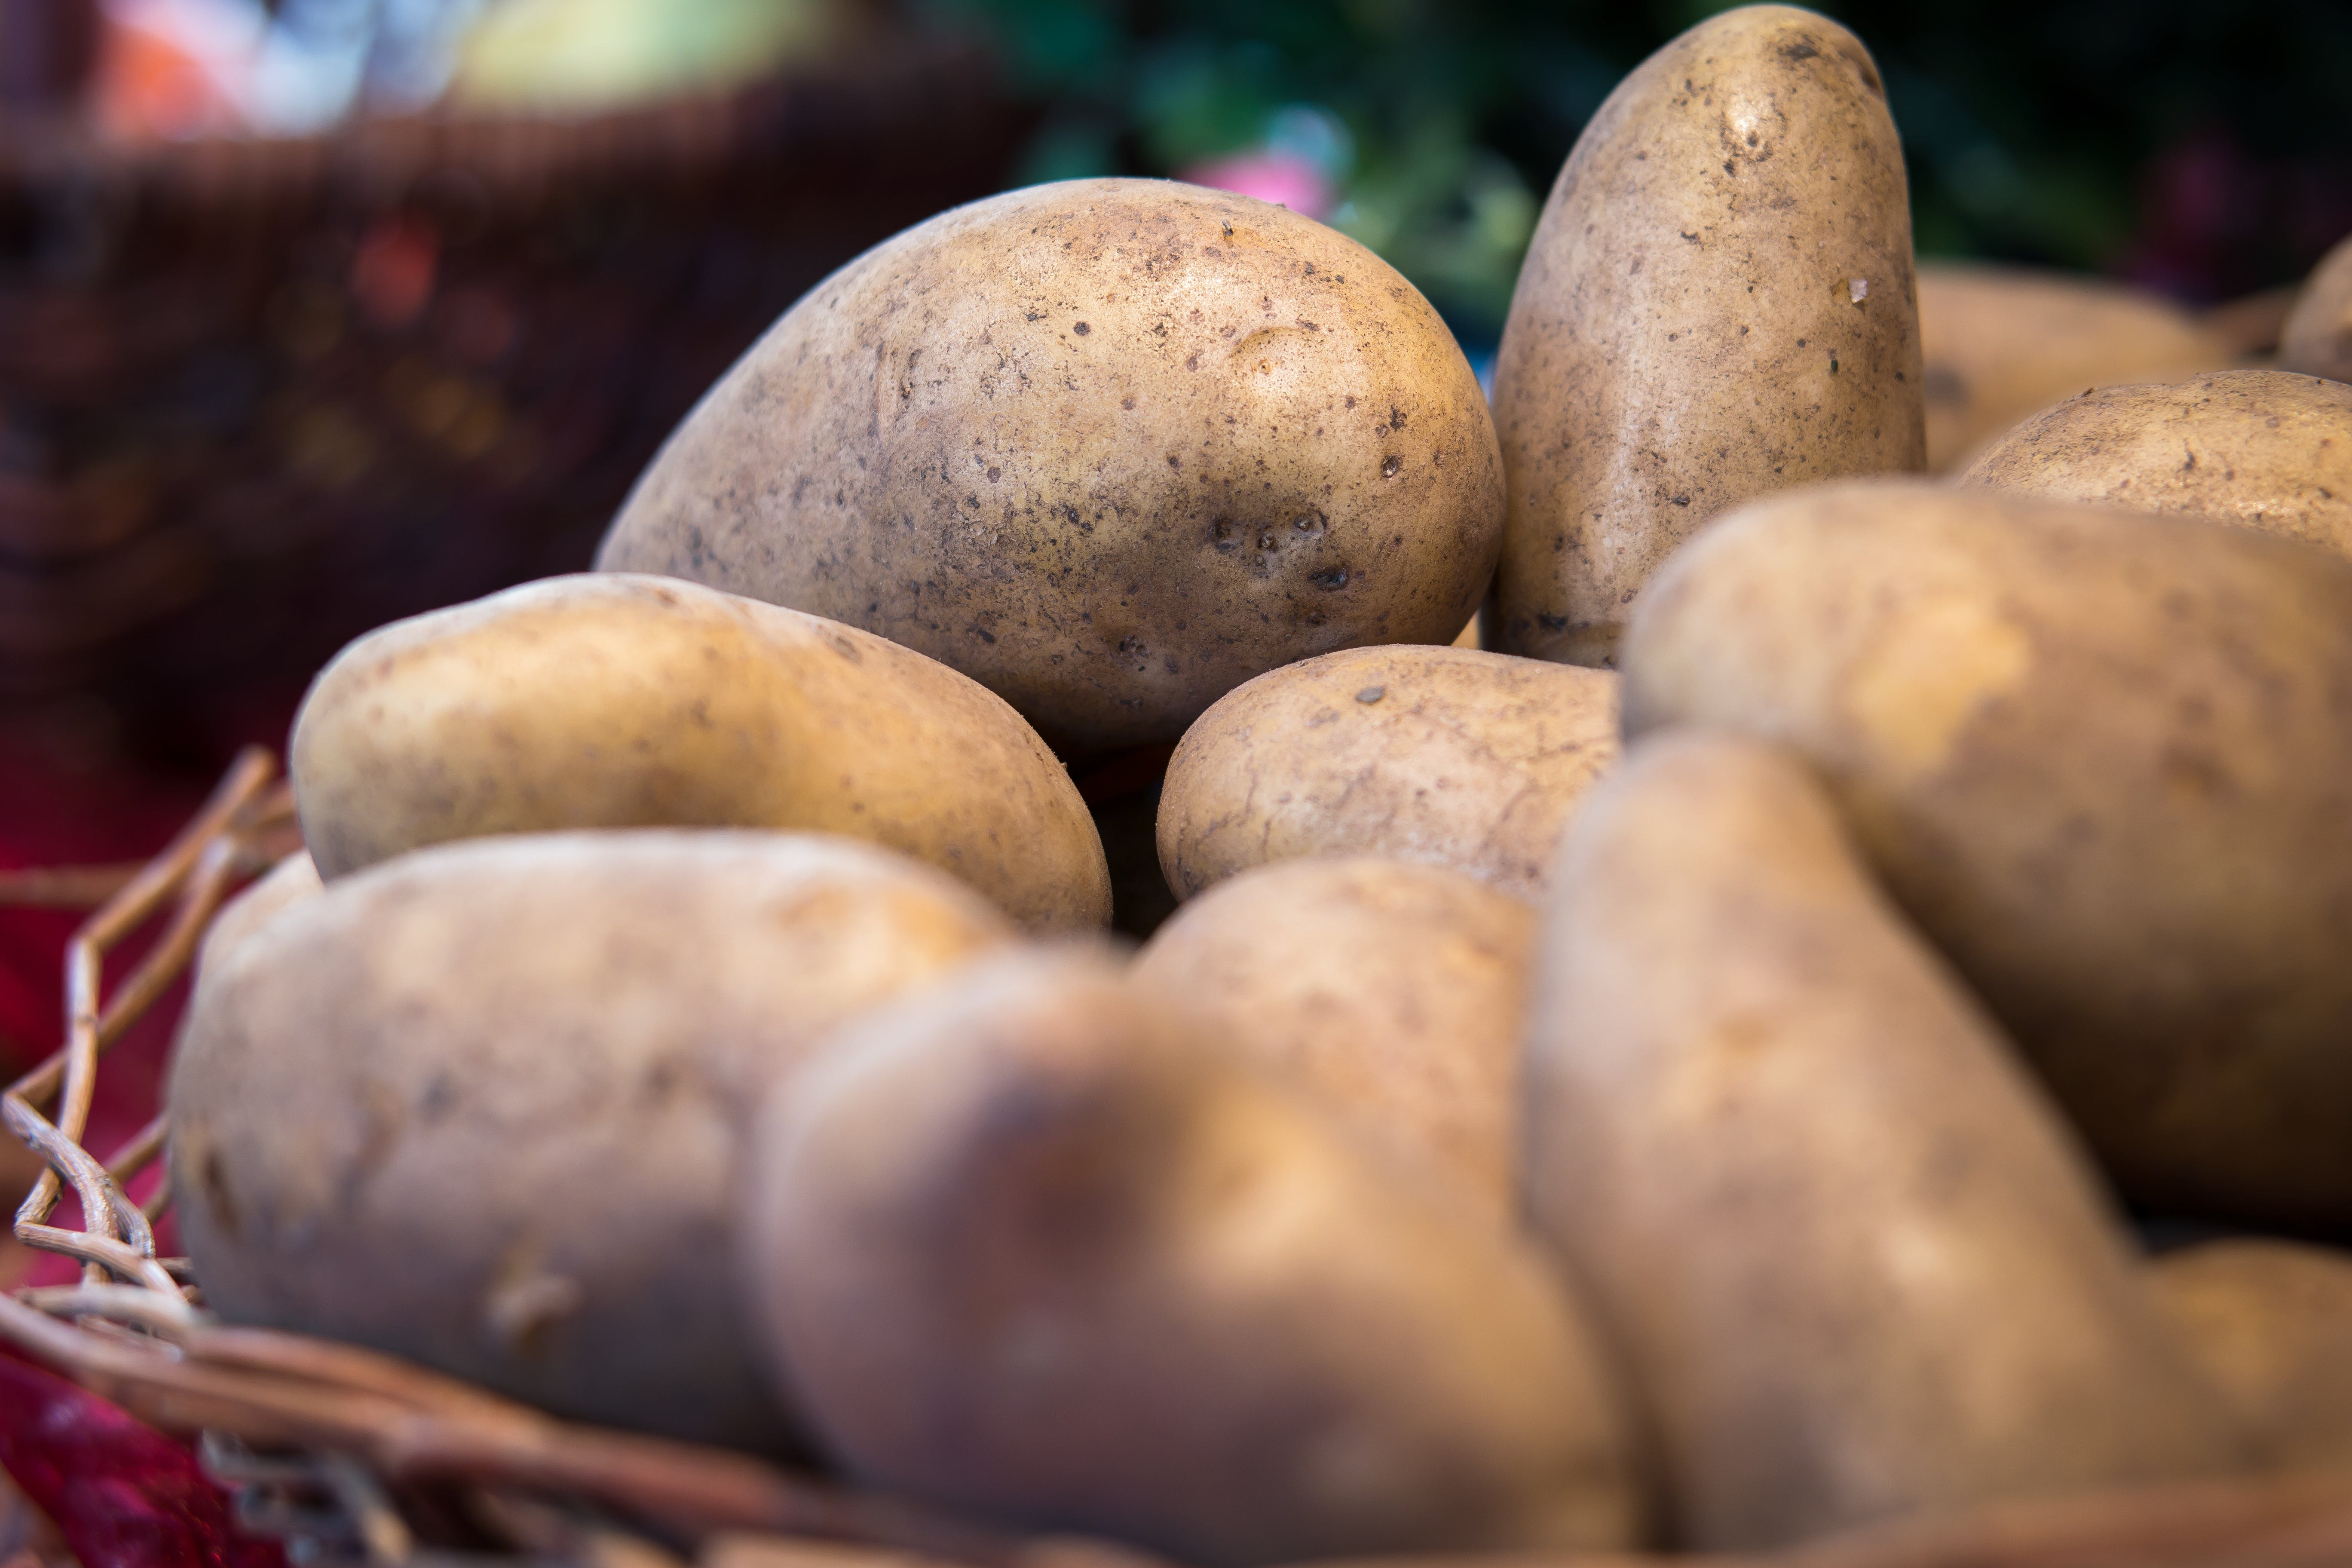 Free stock photo of vegetables, potatoes, agriculture, harvest